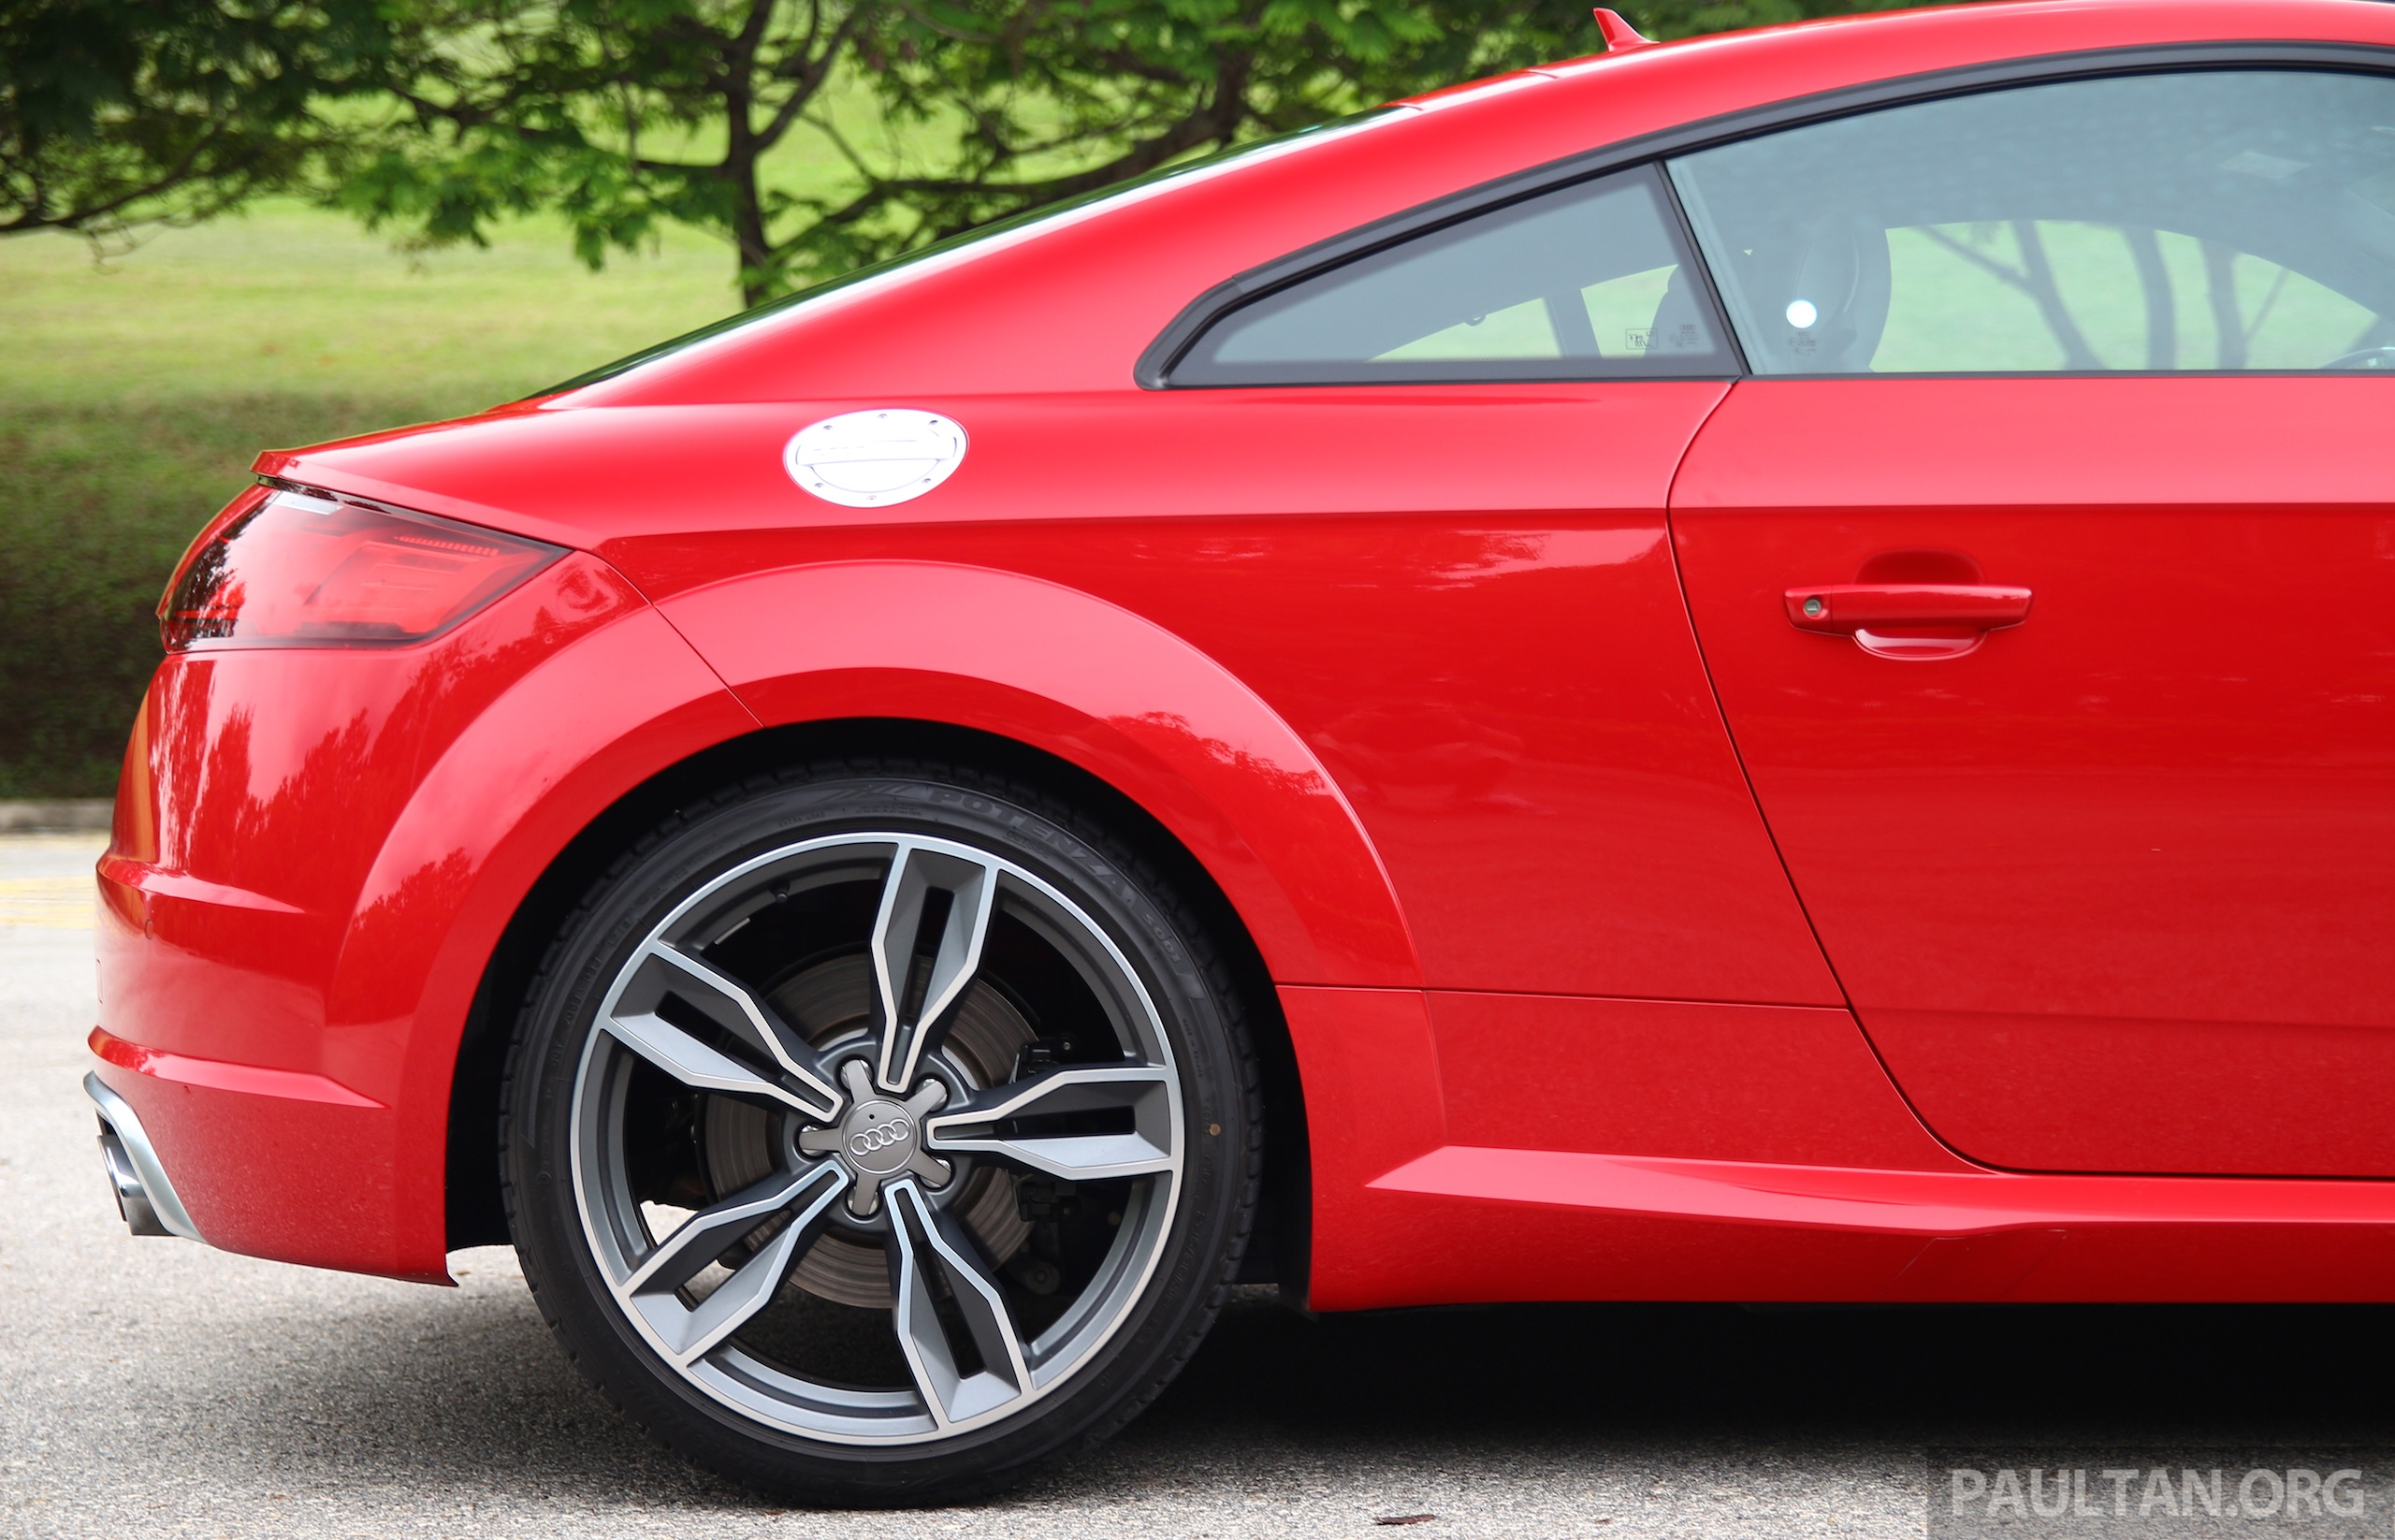 Driven Audi Tts Style Now Matched By Substance Paul